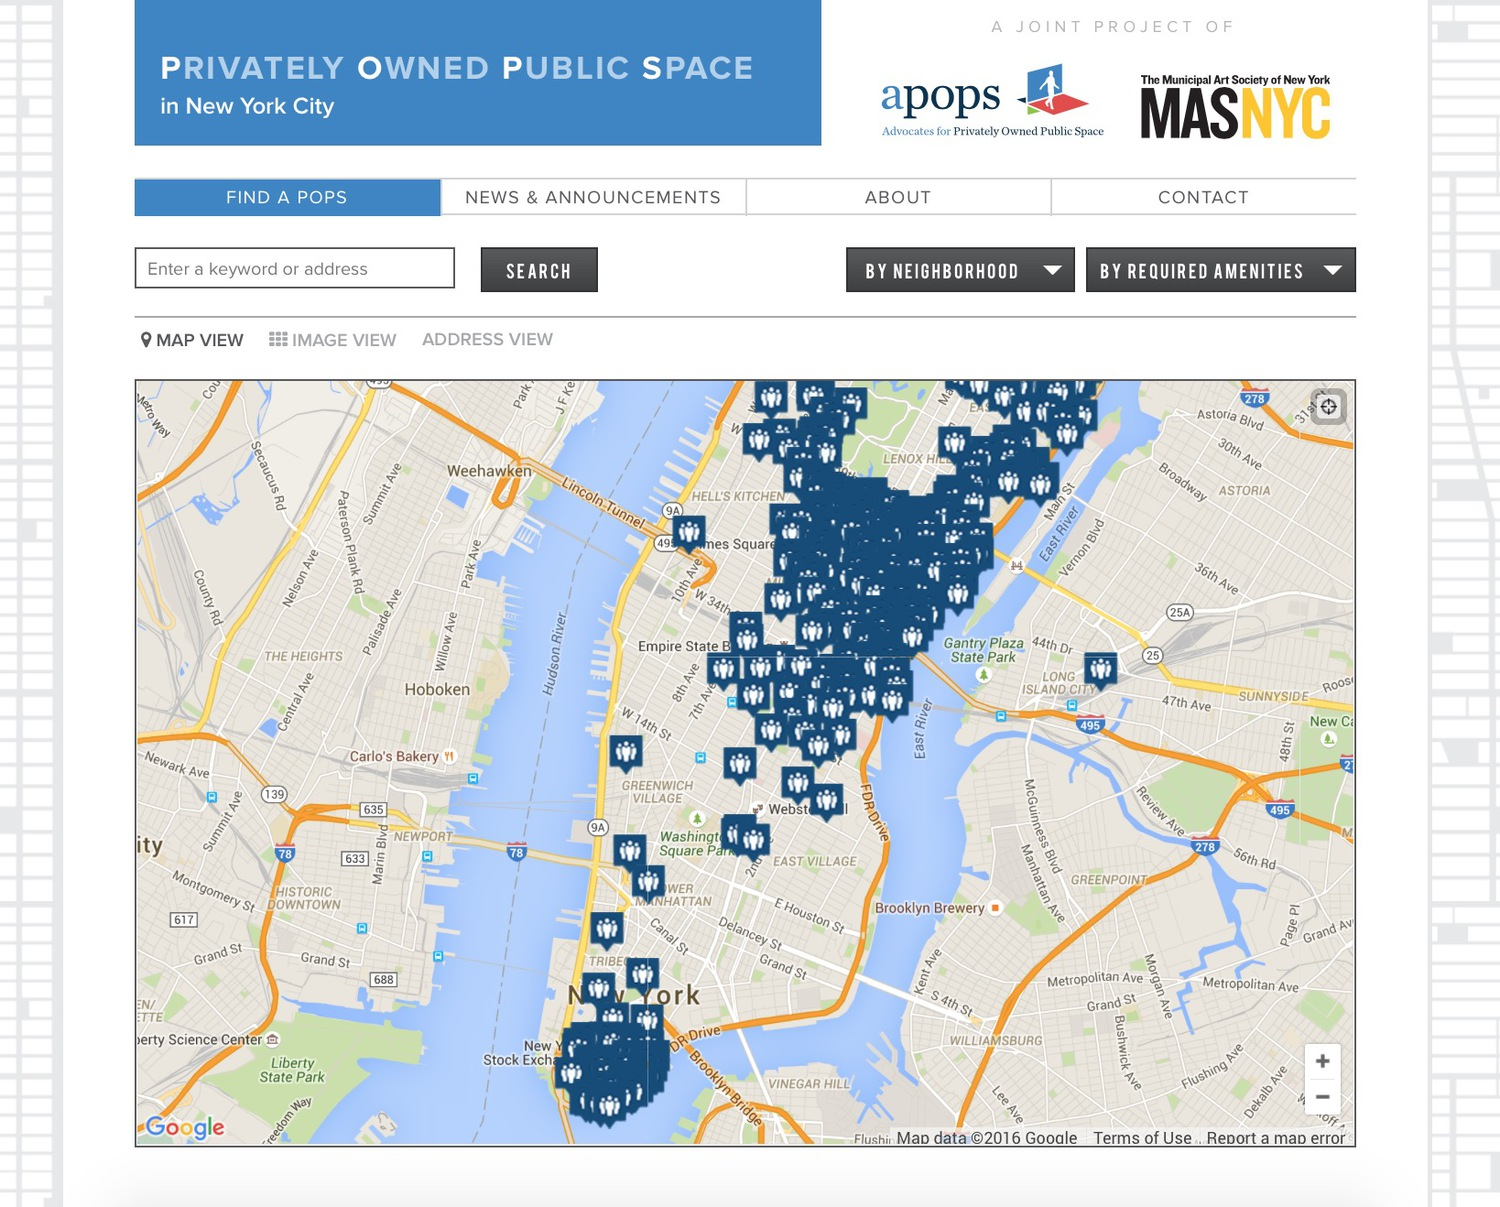 Privately Owned Public Space in New York City